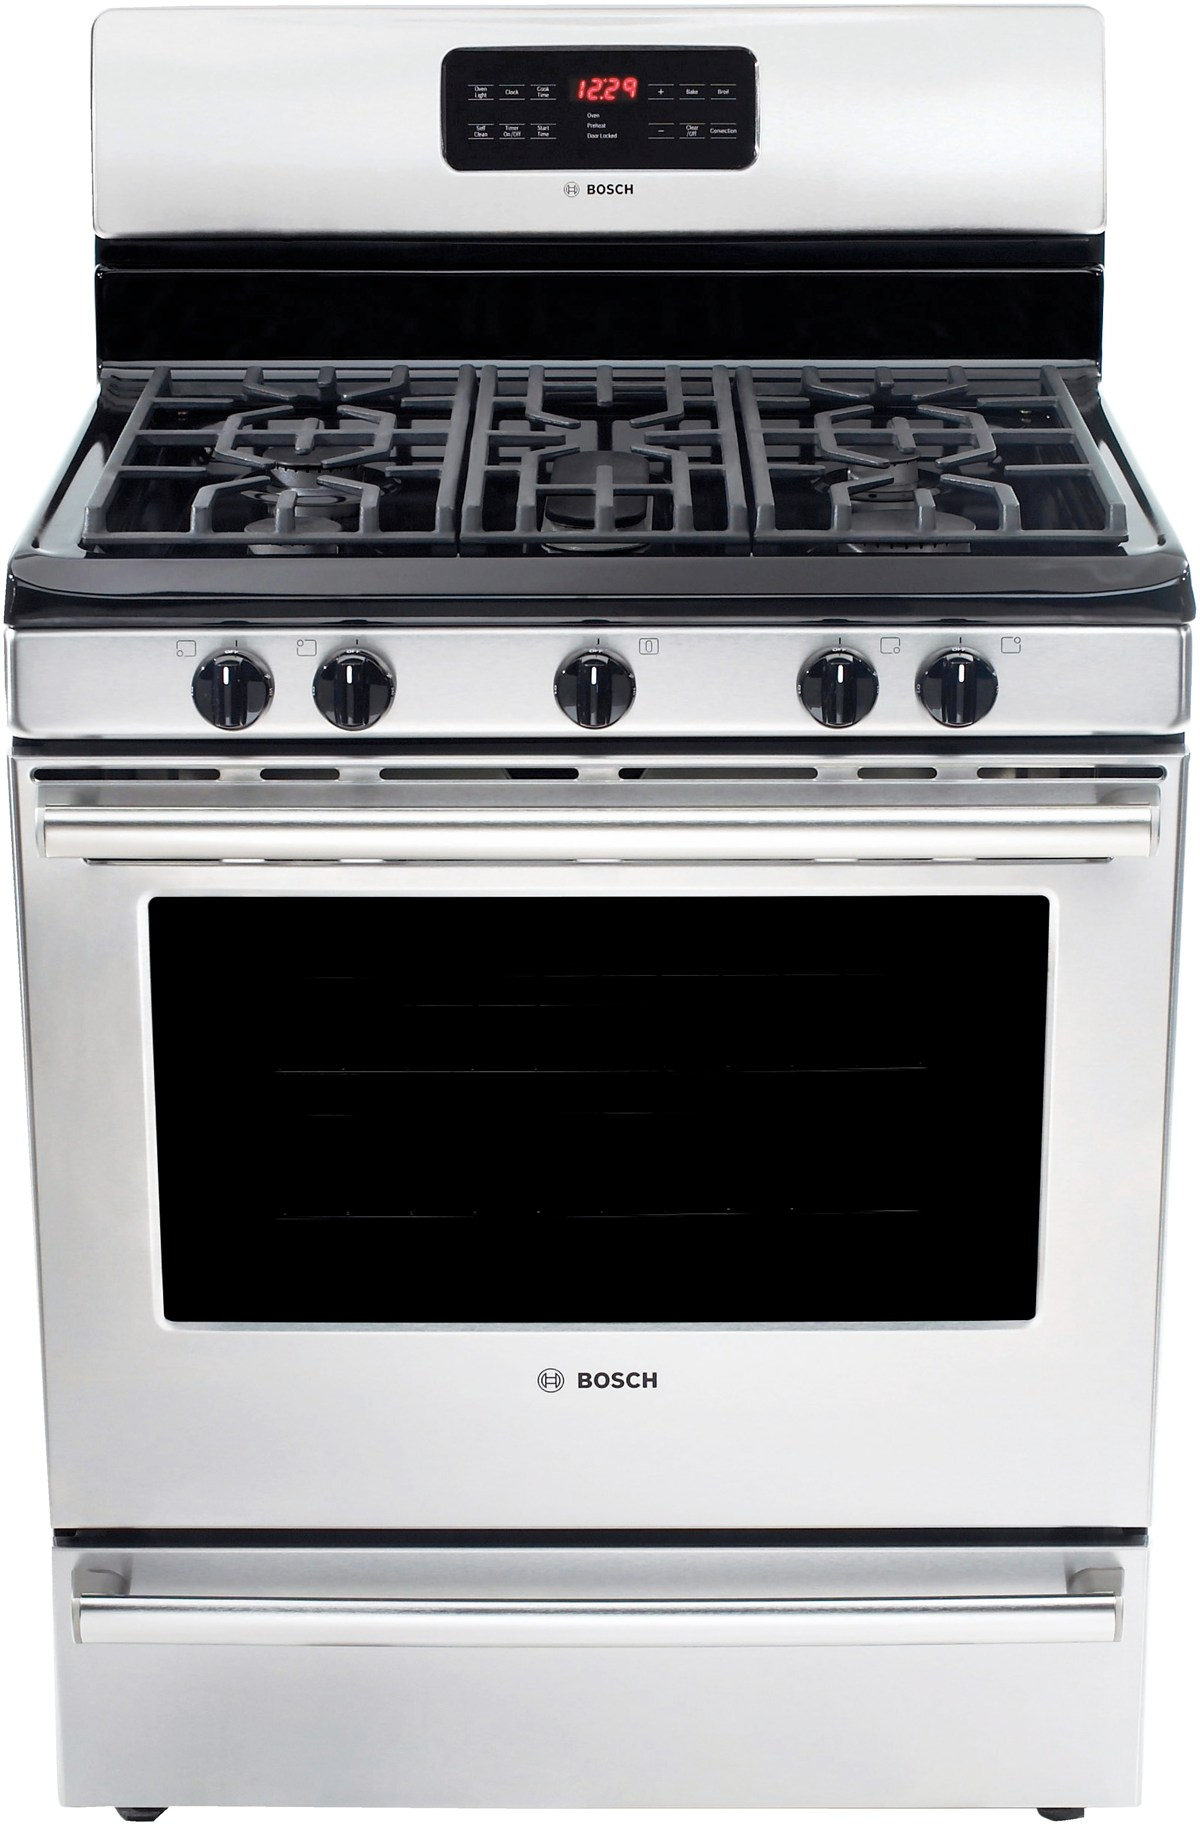 Bosch Hgs5053uc 30 Quot Freestanding Gas Range With 5 Sealed